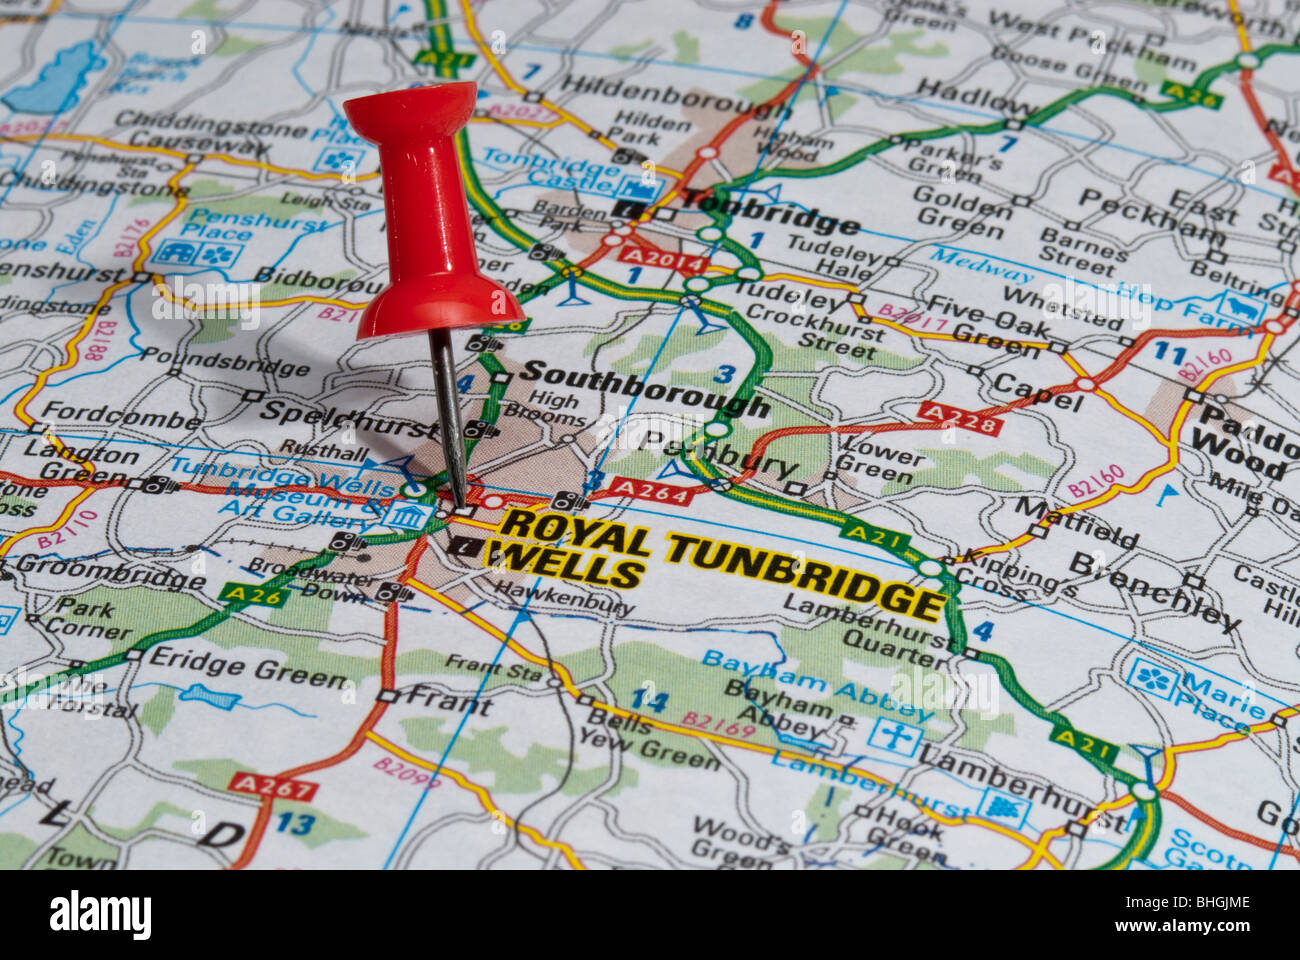 Tunbridge Wells Map red map pin in road map pointing to city of Royal Tunbridge Wells